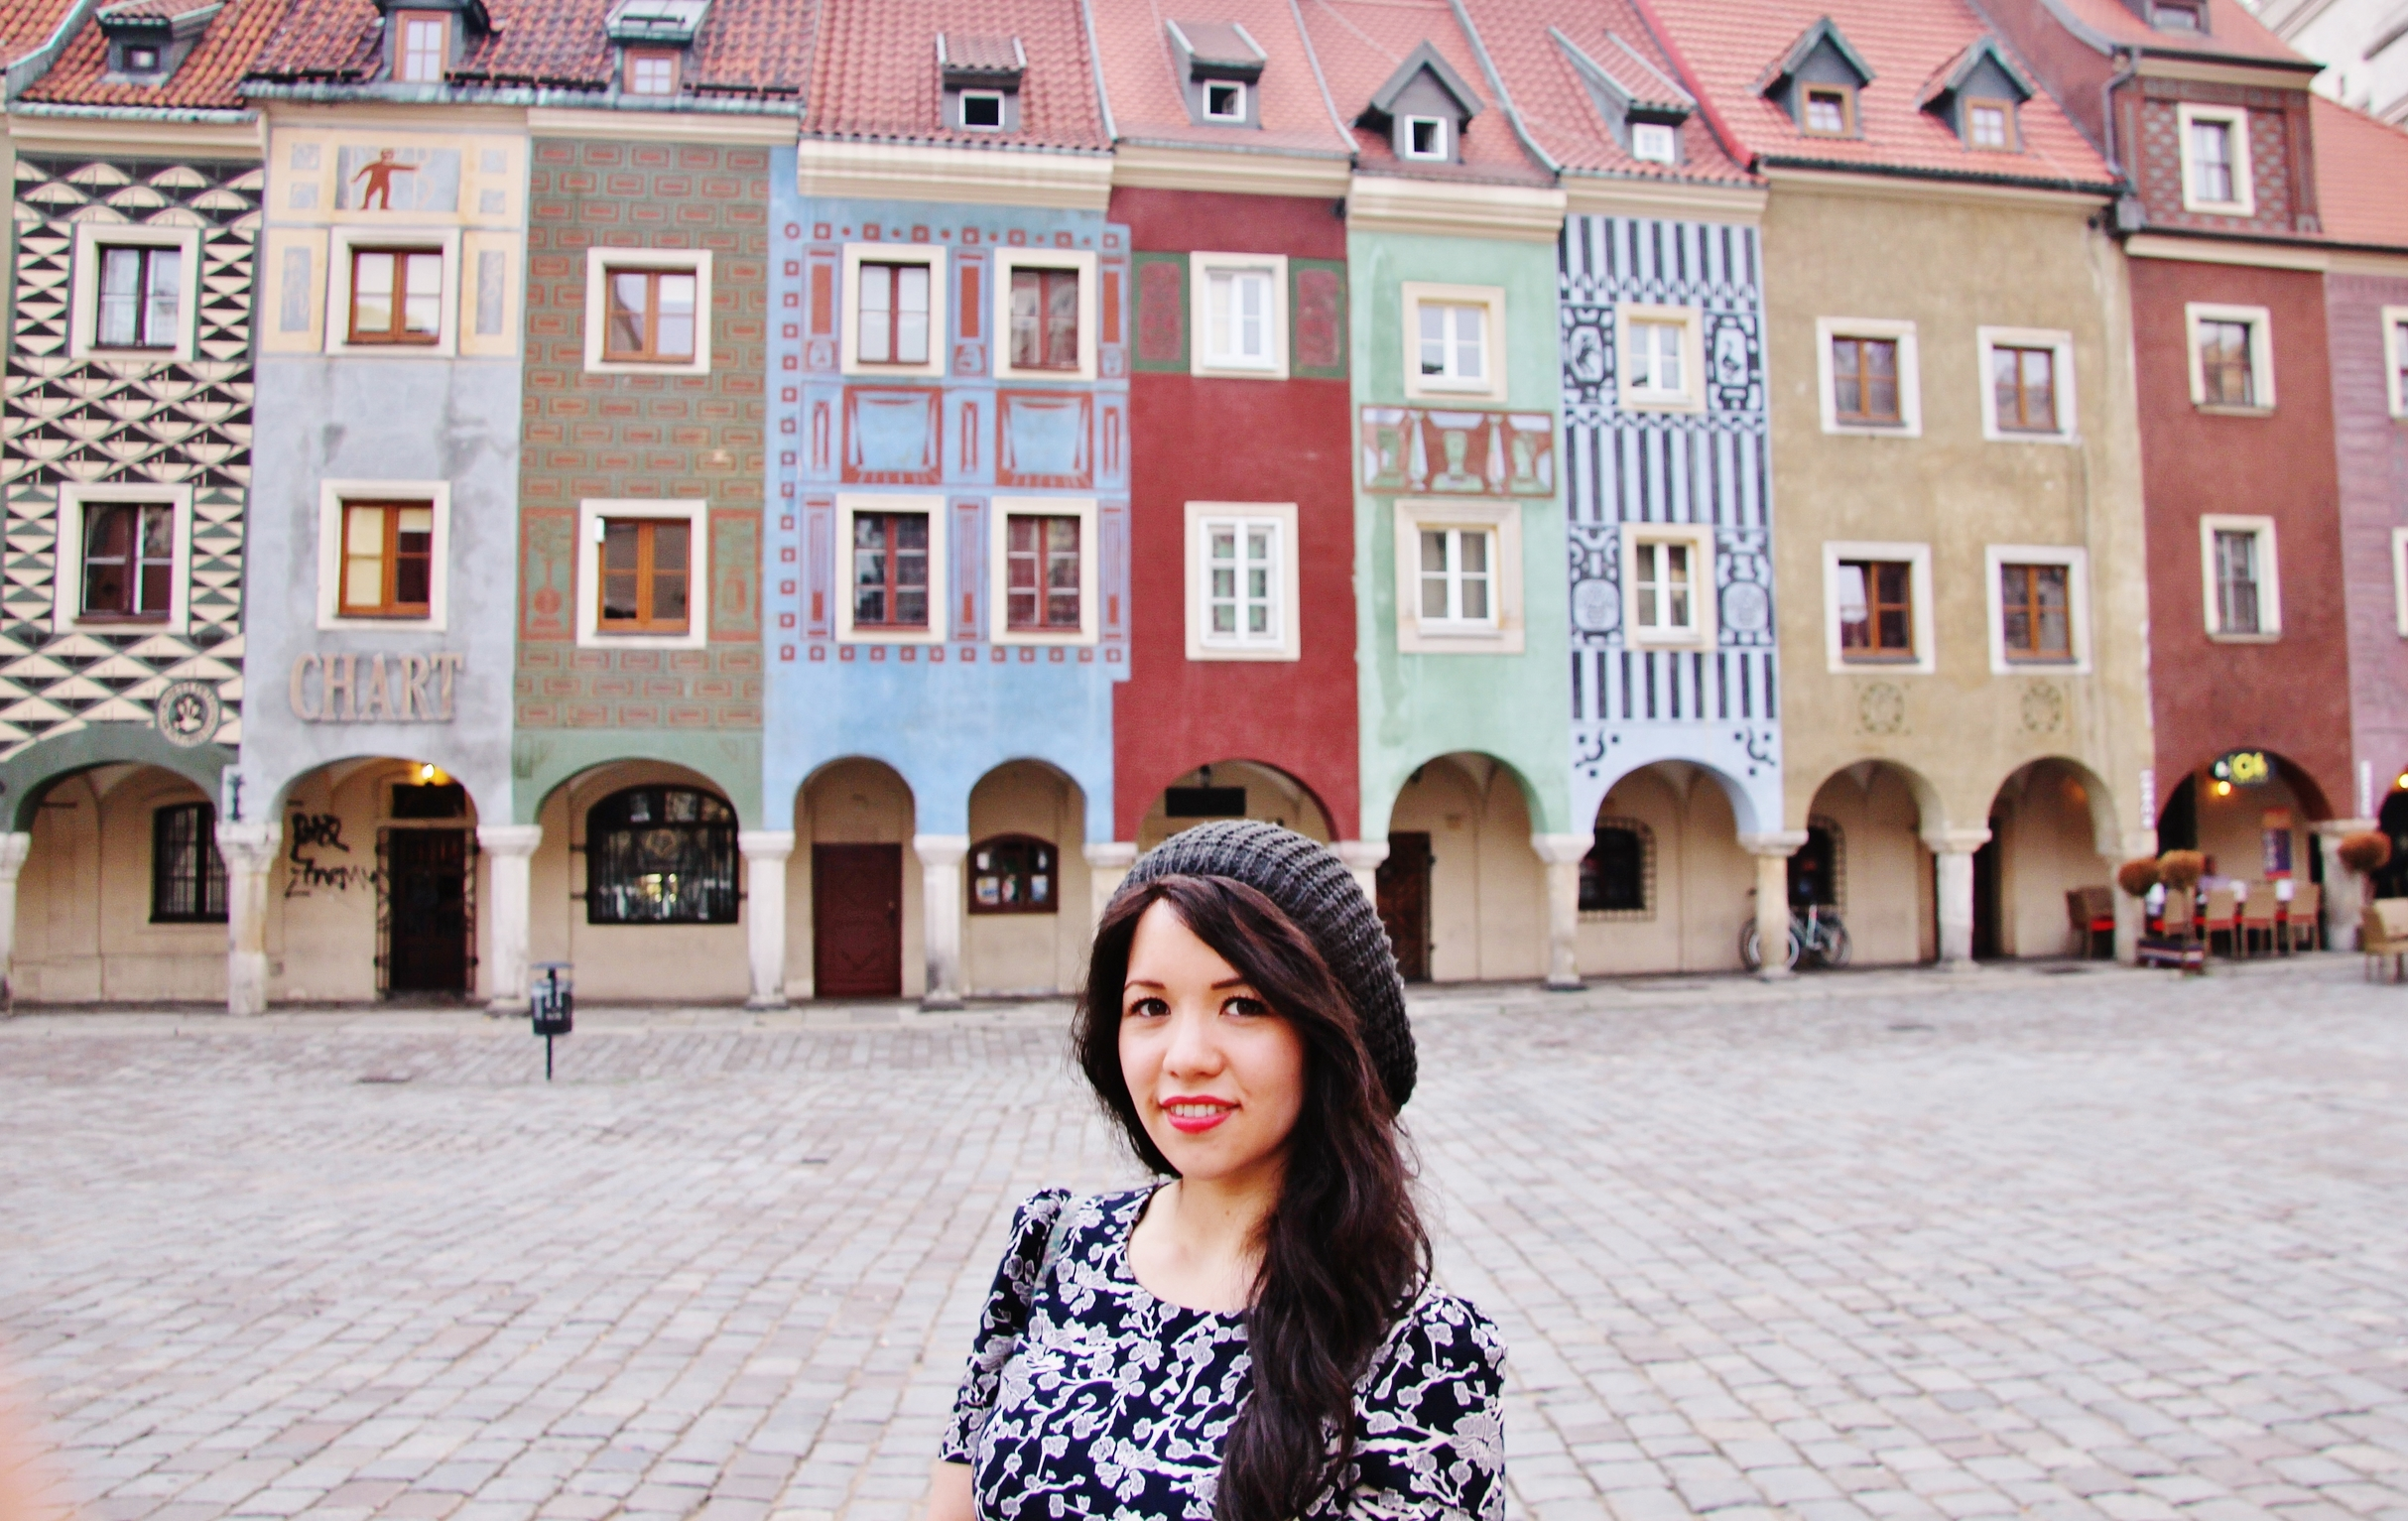 Stary Rynek In Poznan Europe S Most Whimsical And Visually Striking Main Square The Culture Map